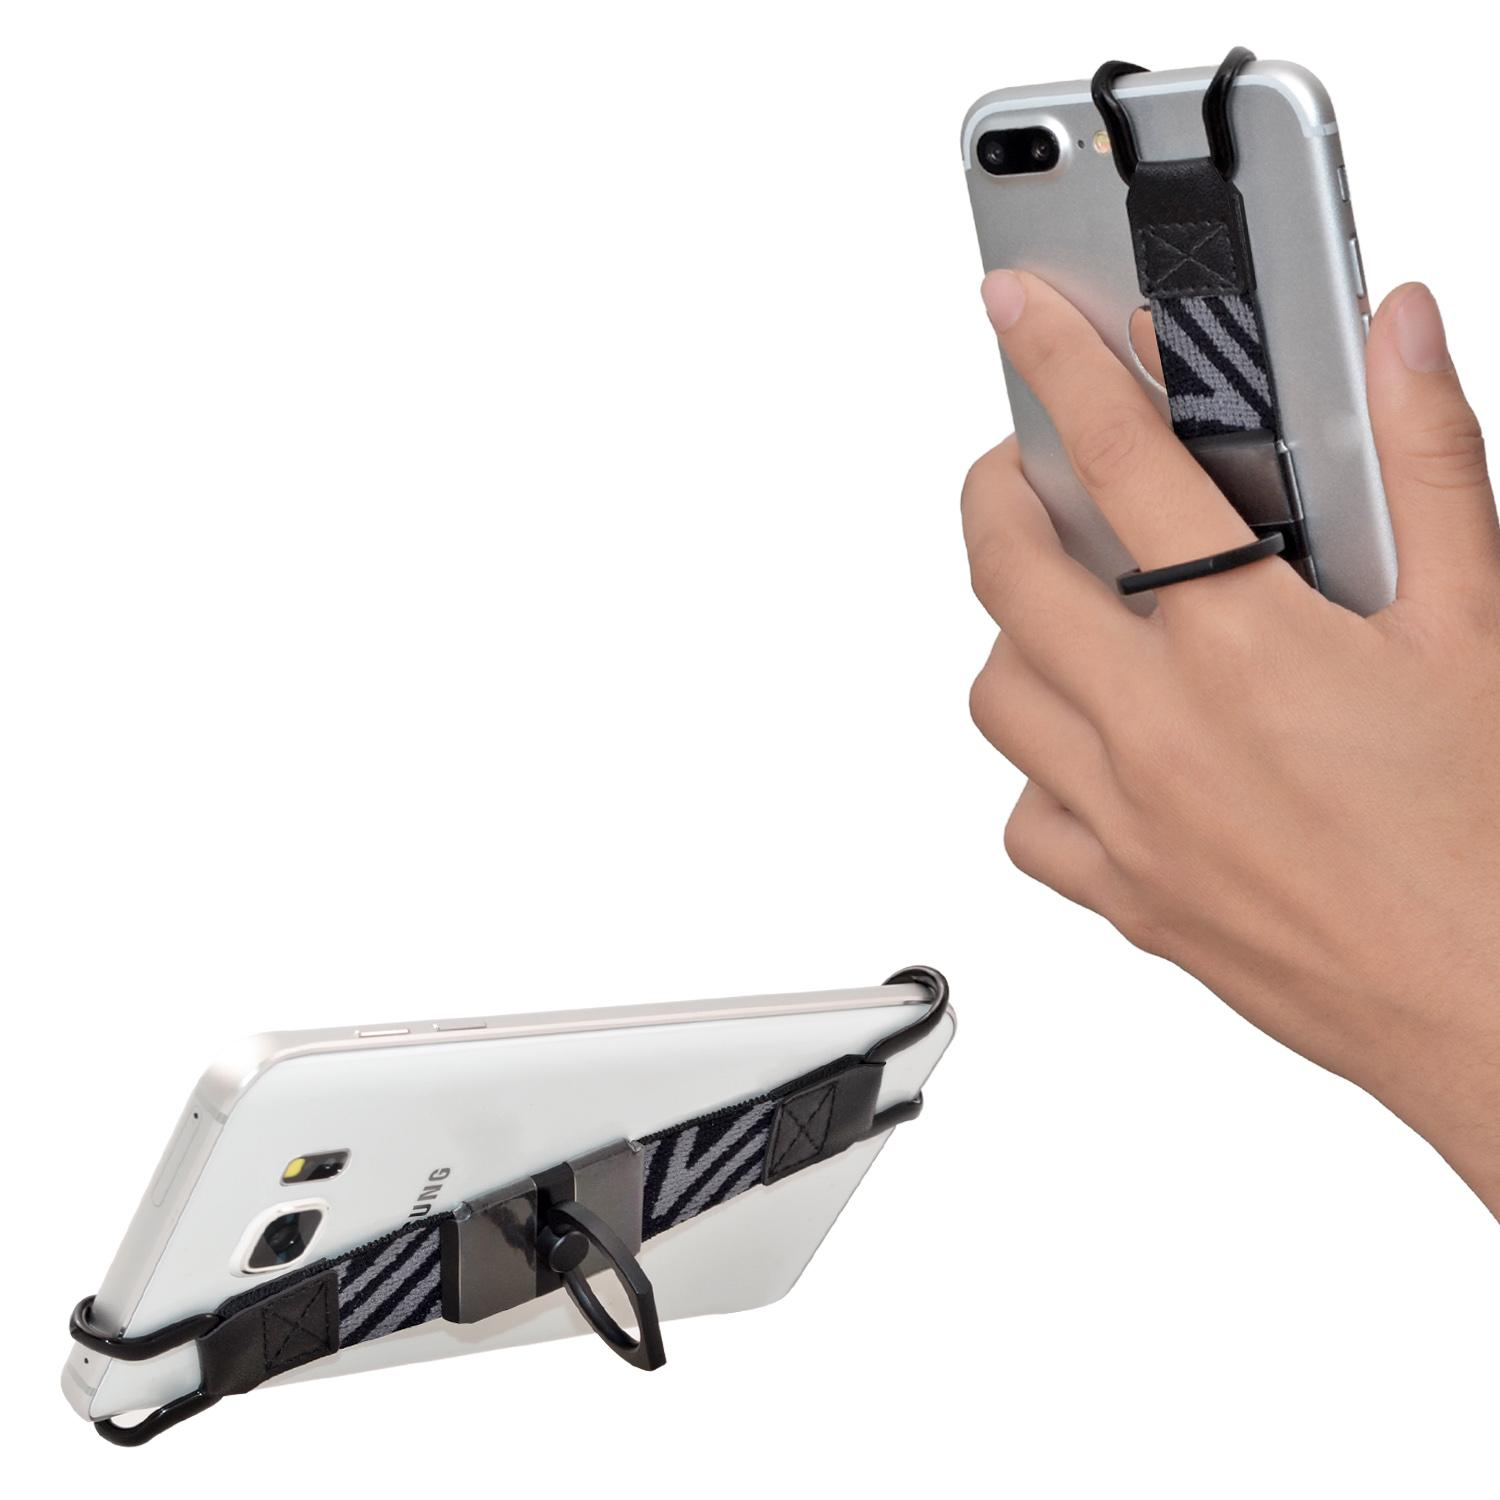 TFY Security Handschlaufe mit 360 ° Rotation Metallring Finger-Grip Halter Stand für iPhone Galaxy S6 Edge